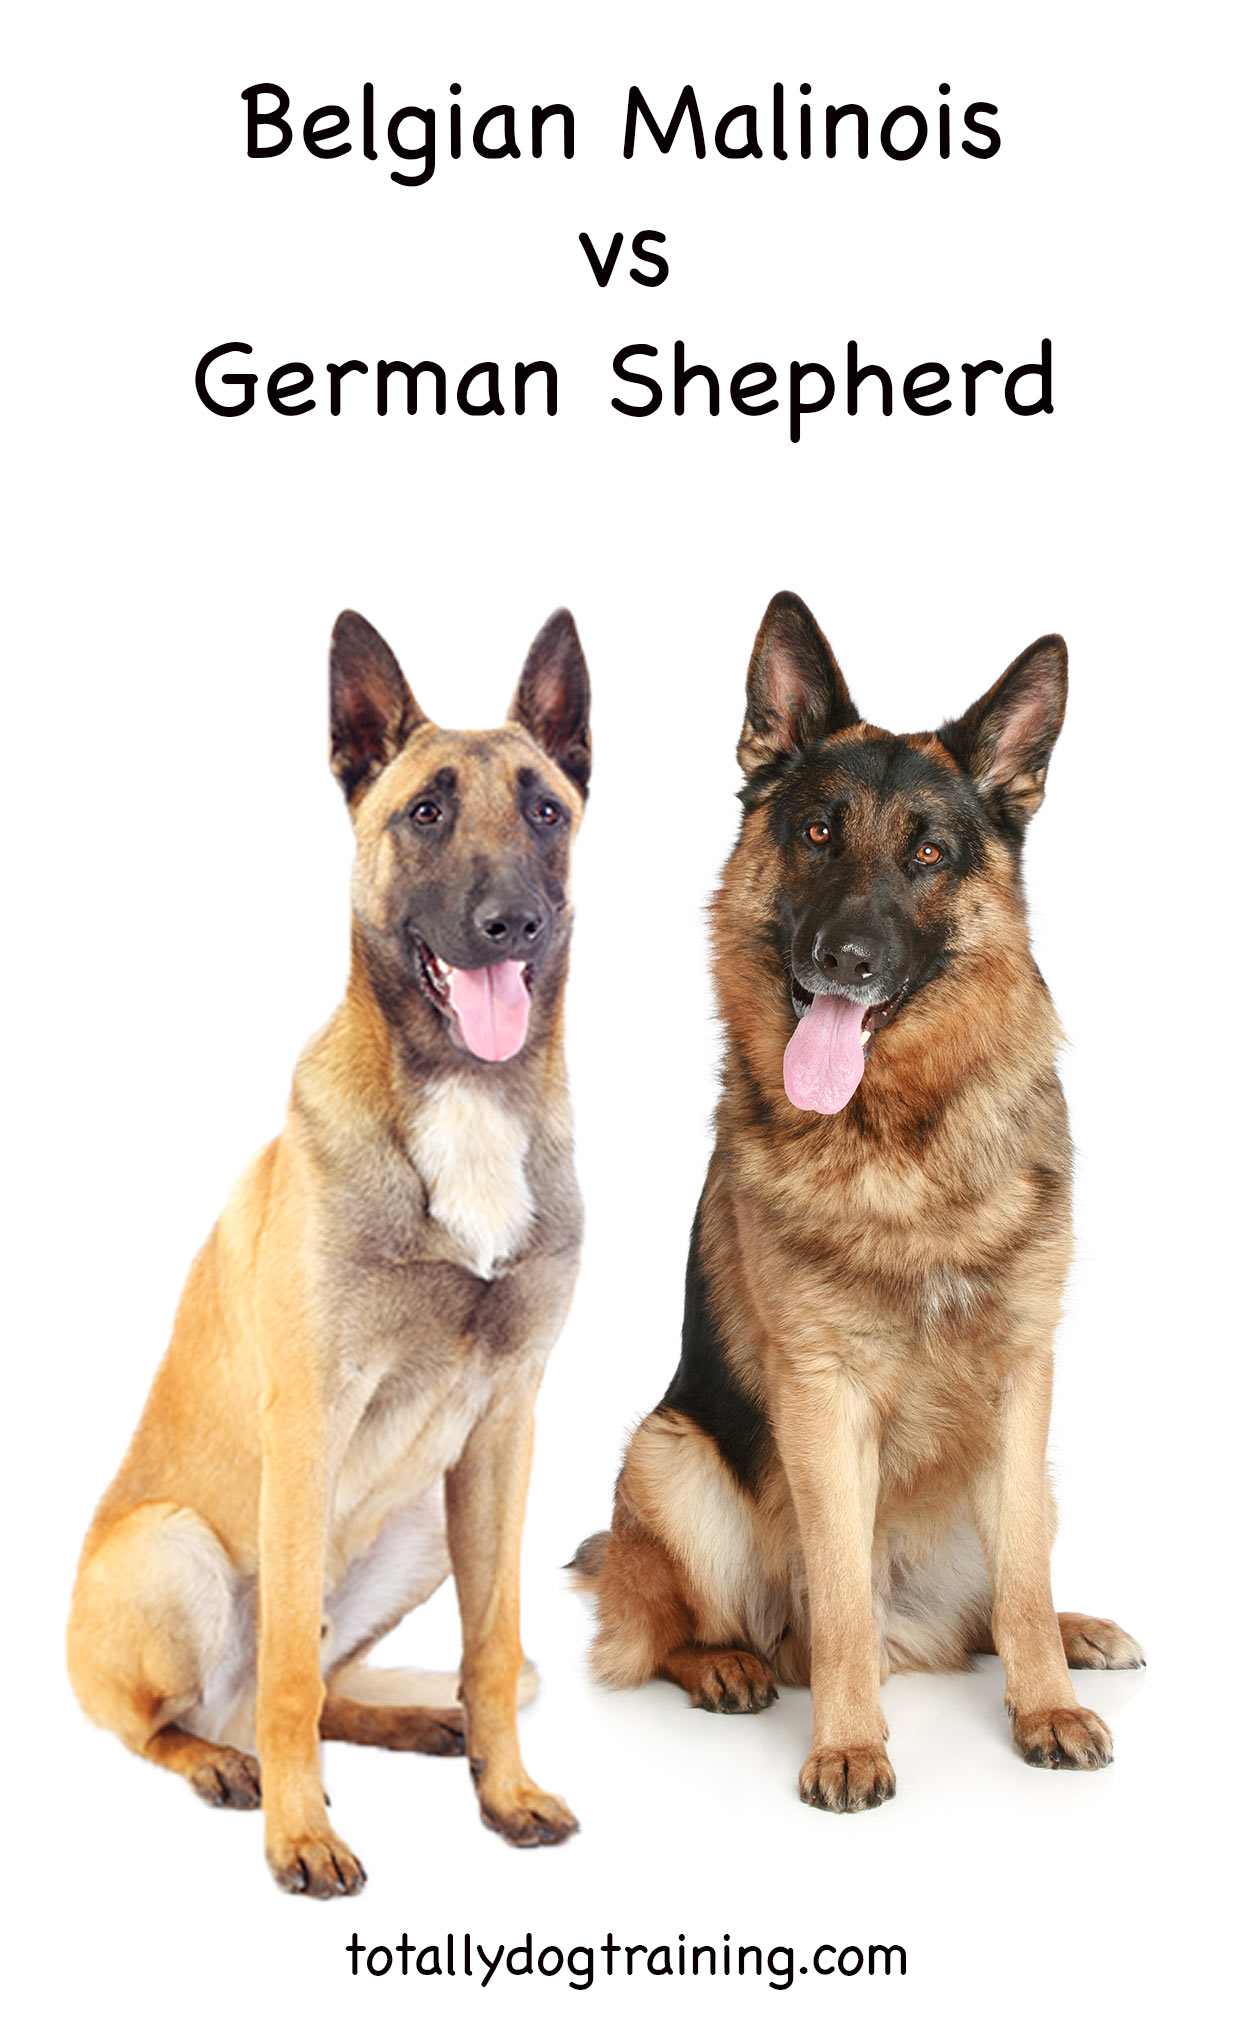 elgian Malinois vs German Shepherd